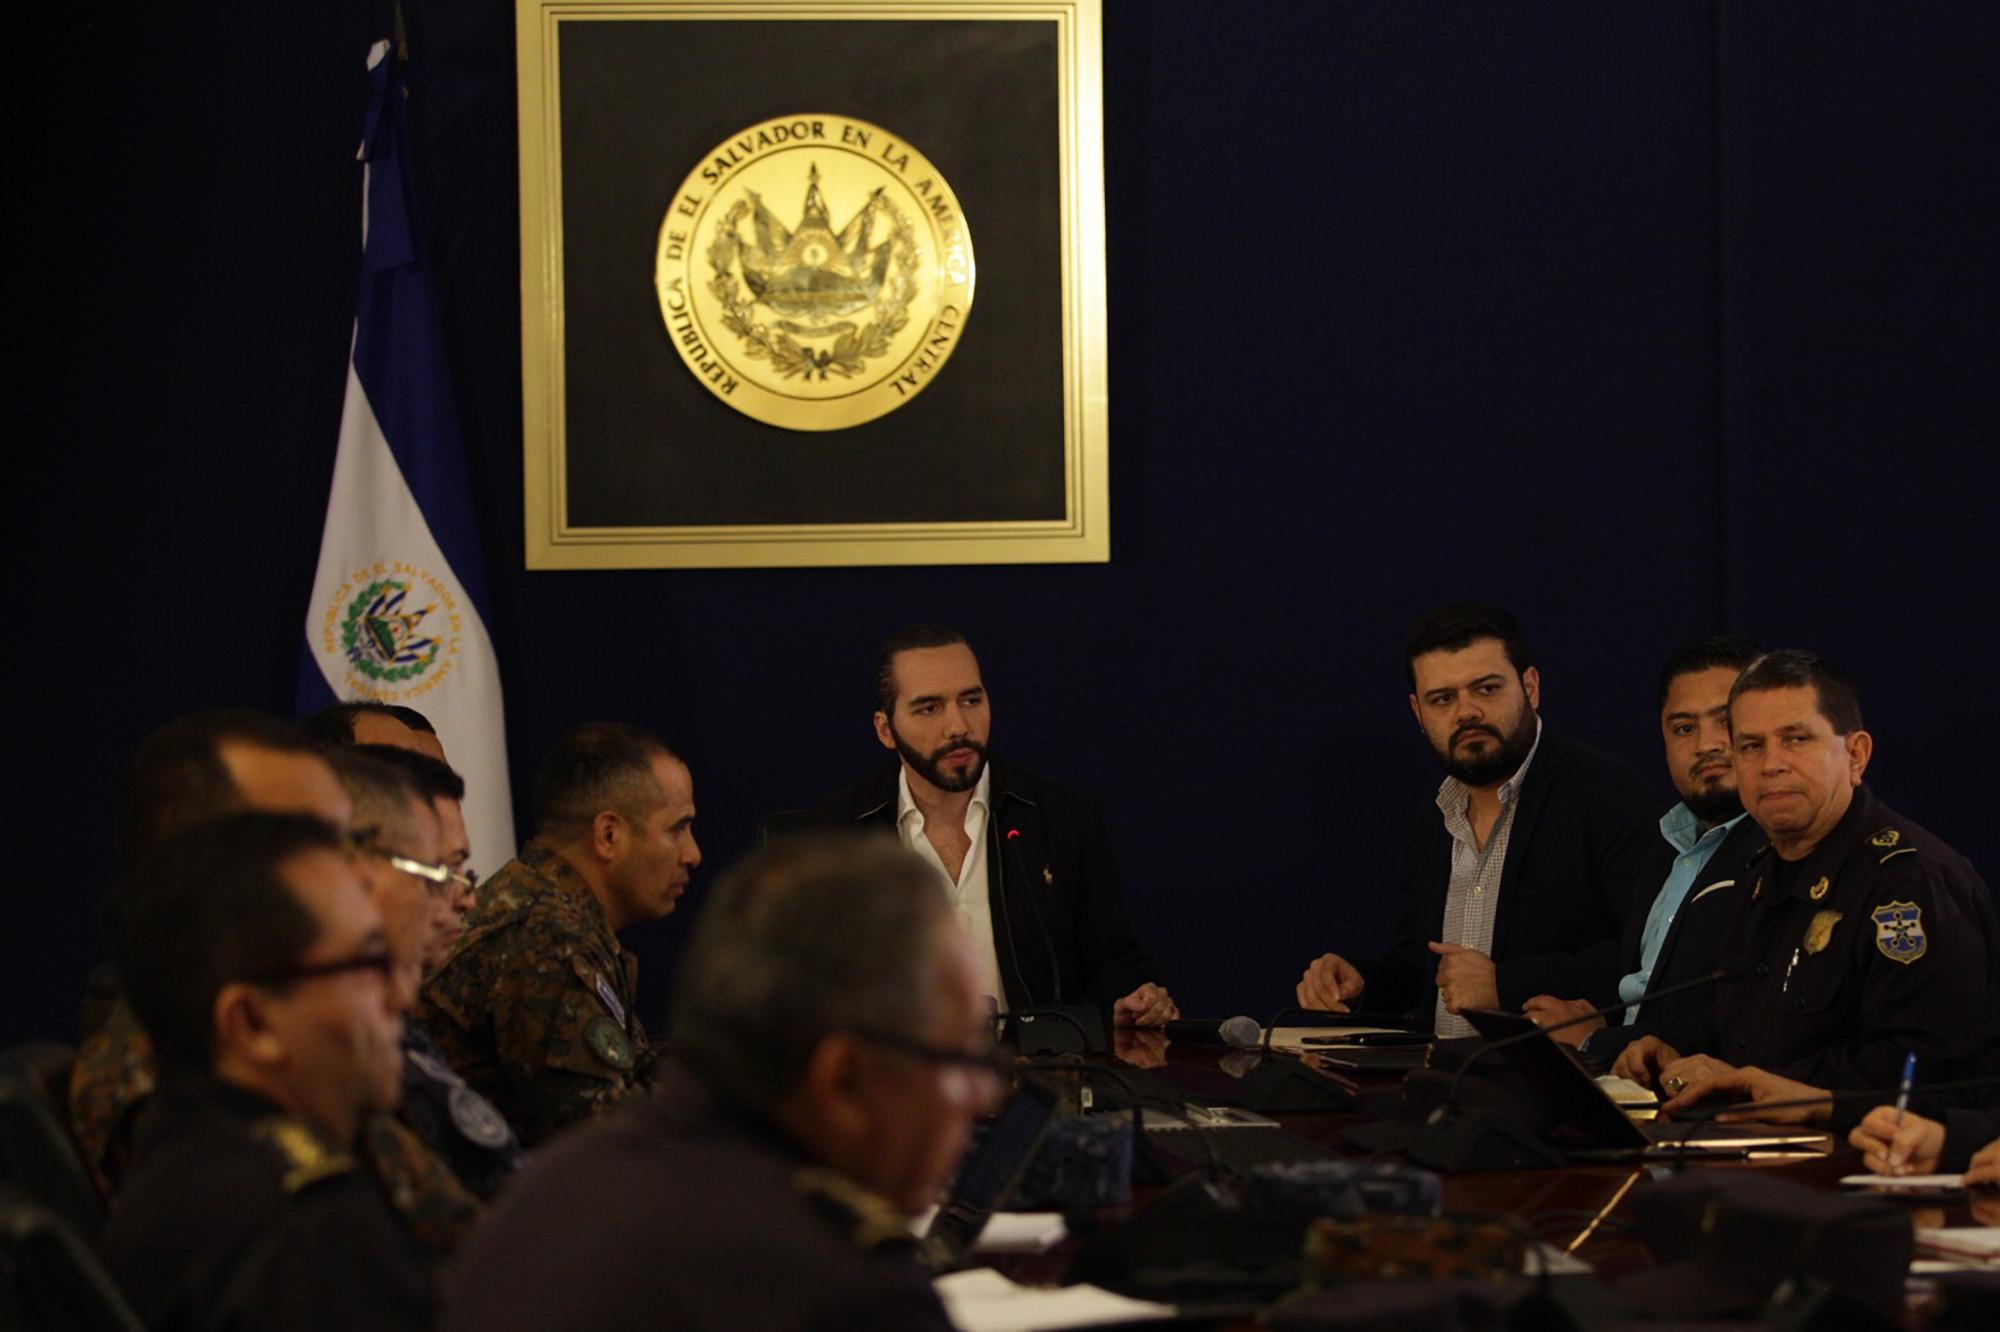 Rogelio Rivas, Minister of Justice and Security, next to Nayib Bukele, during a Security Cabinet press conference on July 15, 2019. Photo by El Faro: Victor Peña.